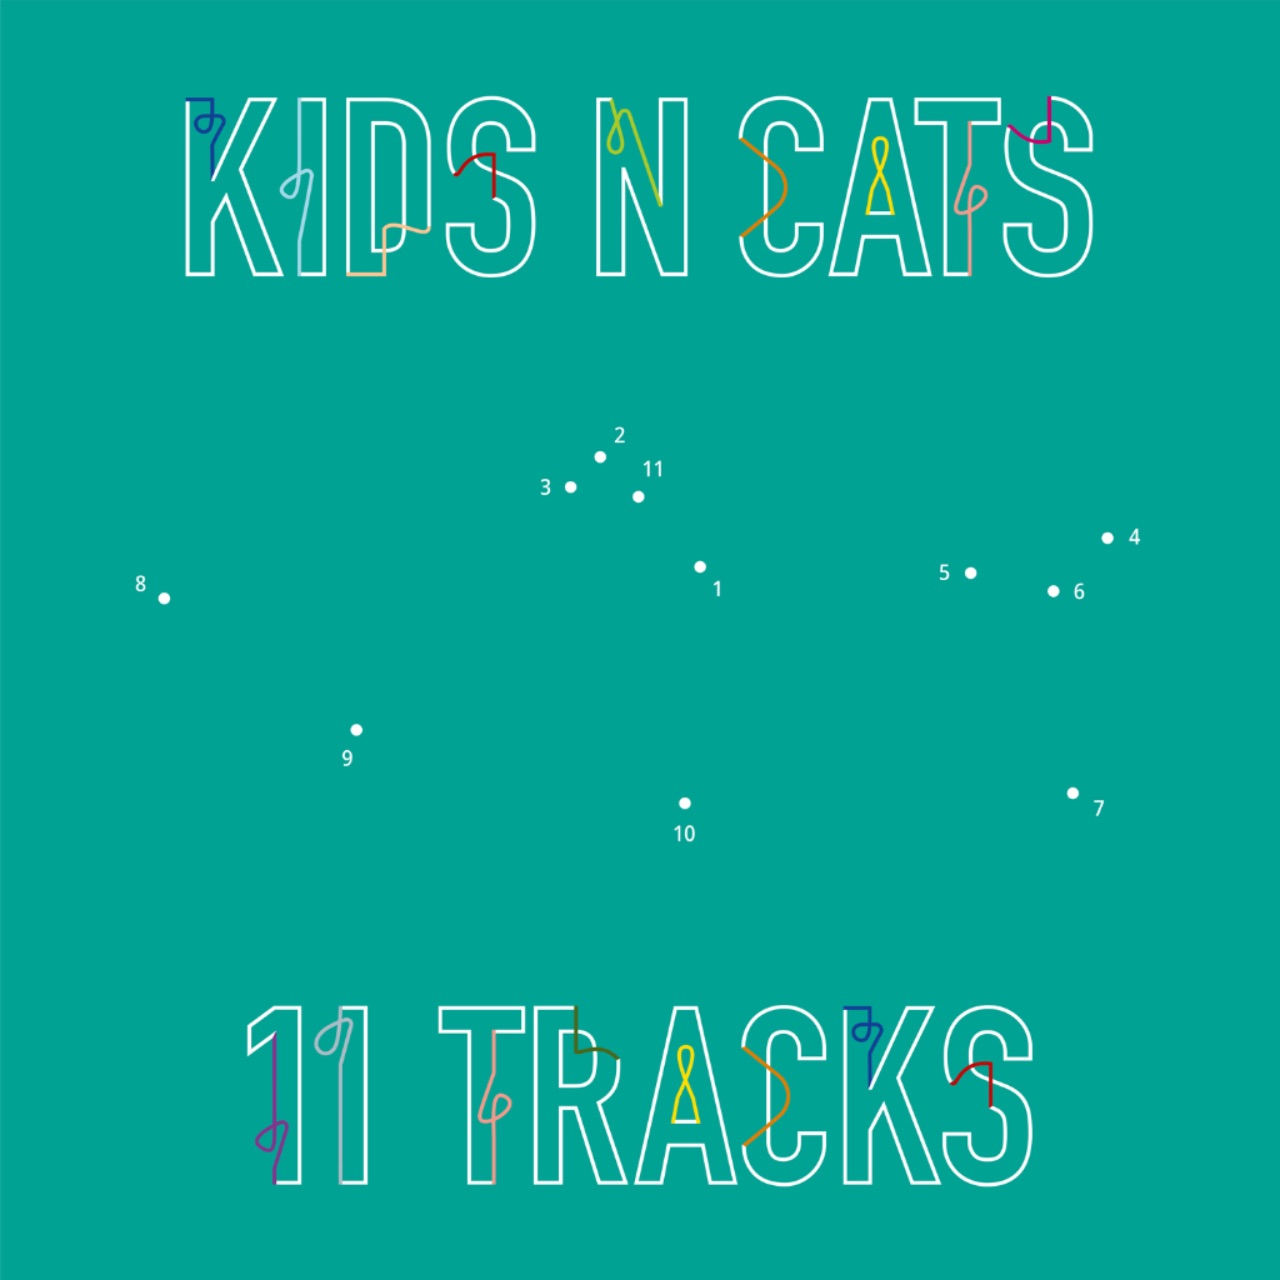 """Cover """"11 Countries"""" Kids N Cats"""